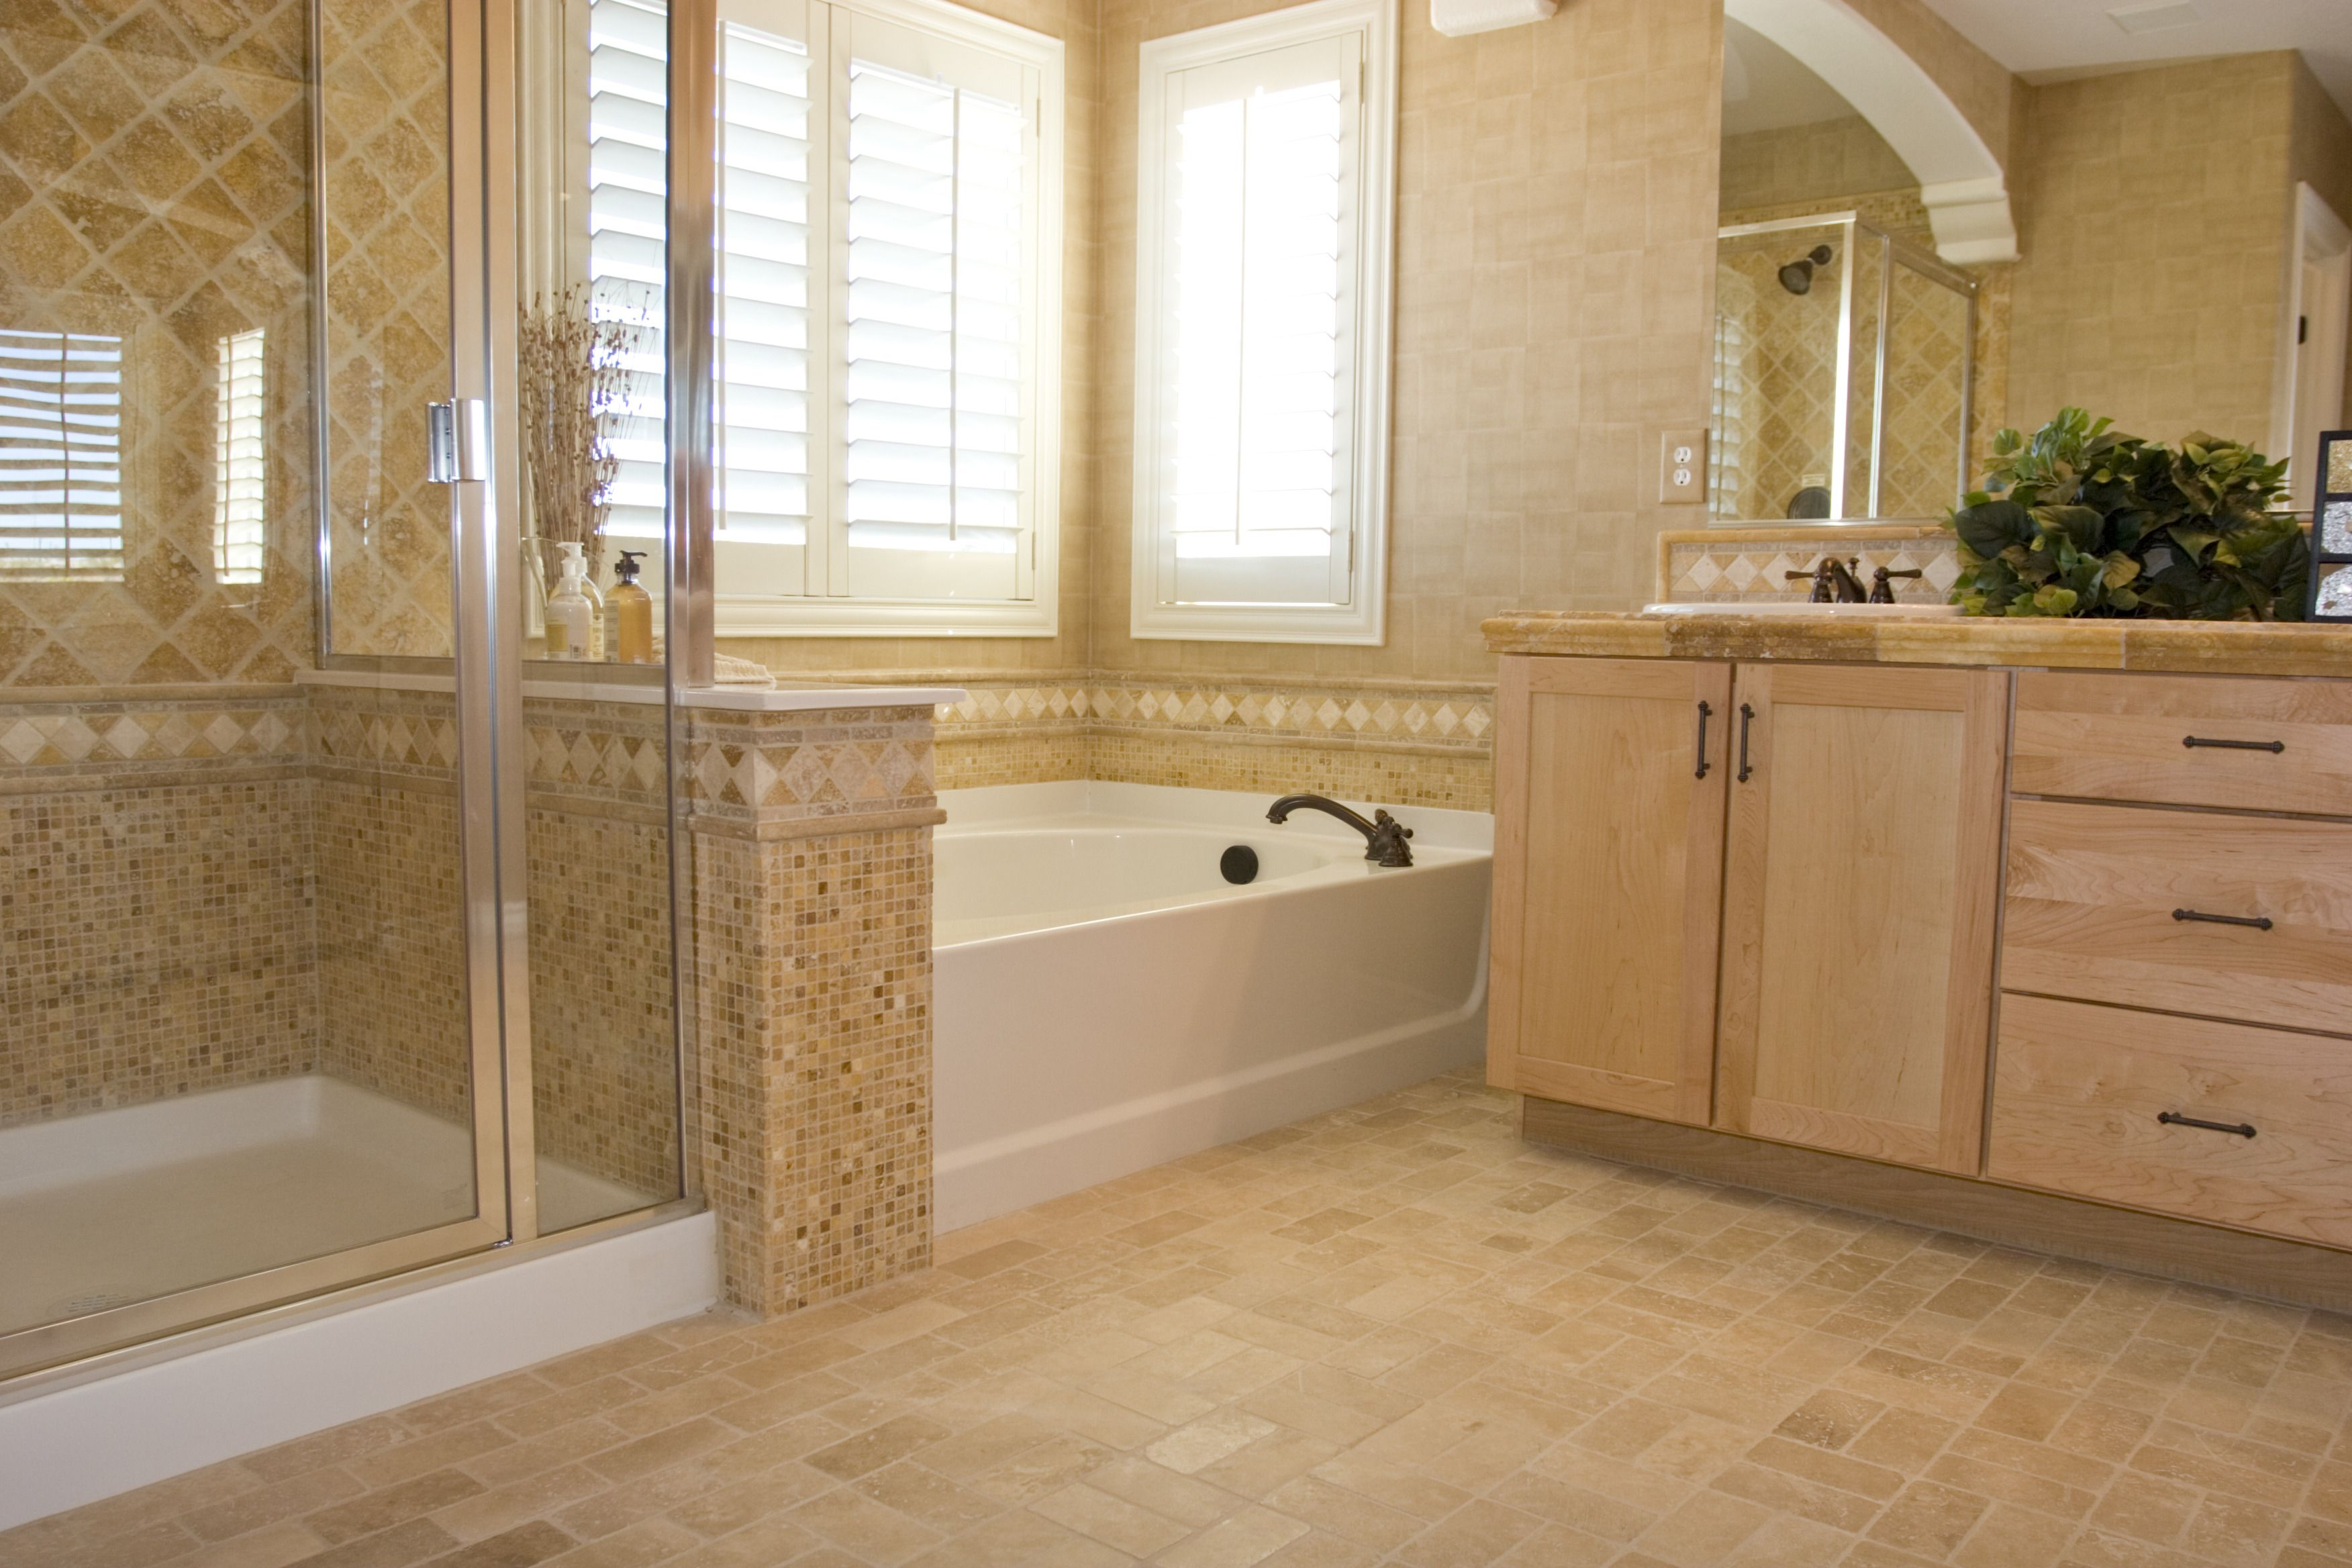 30 bathroom tile designs on a budget Best flooring options for small bathrooms